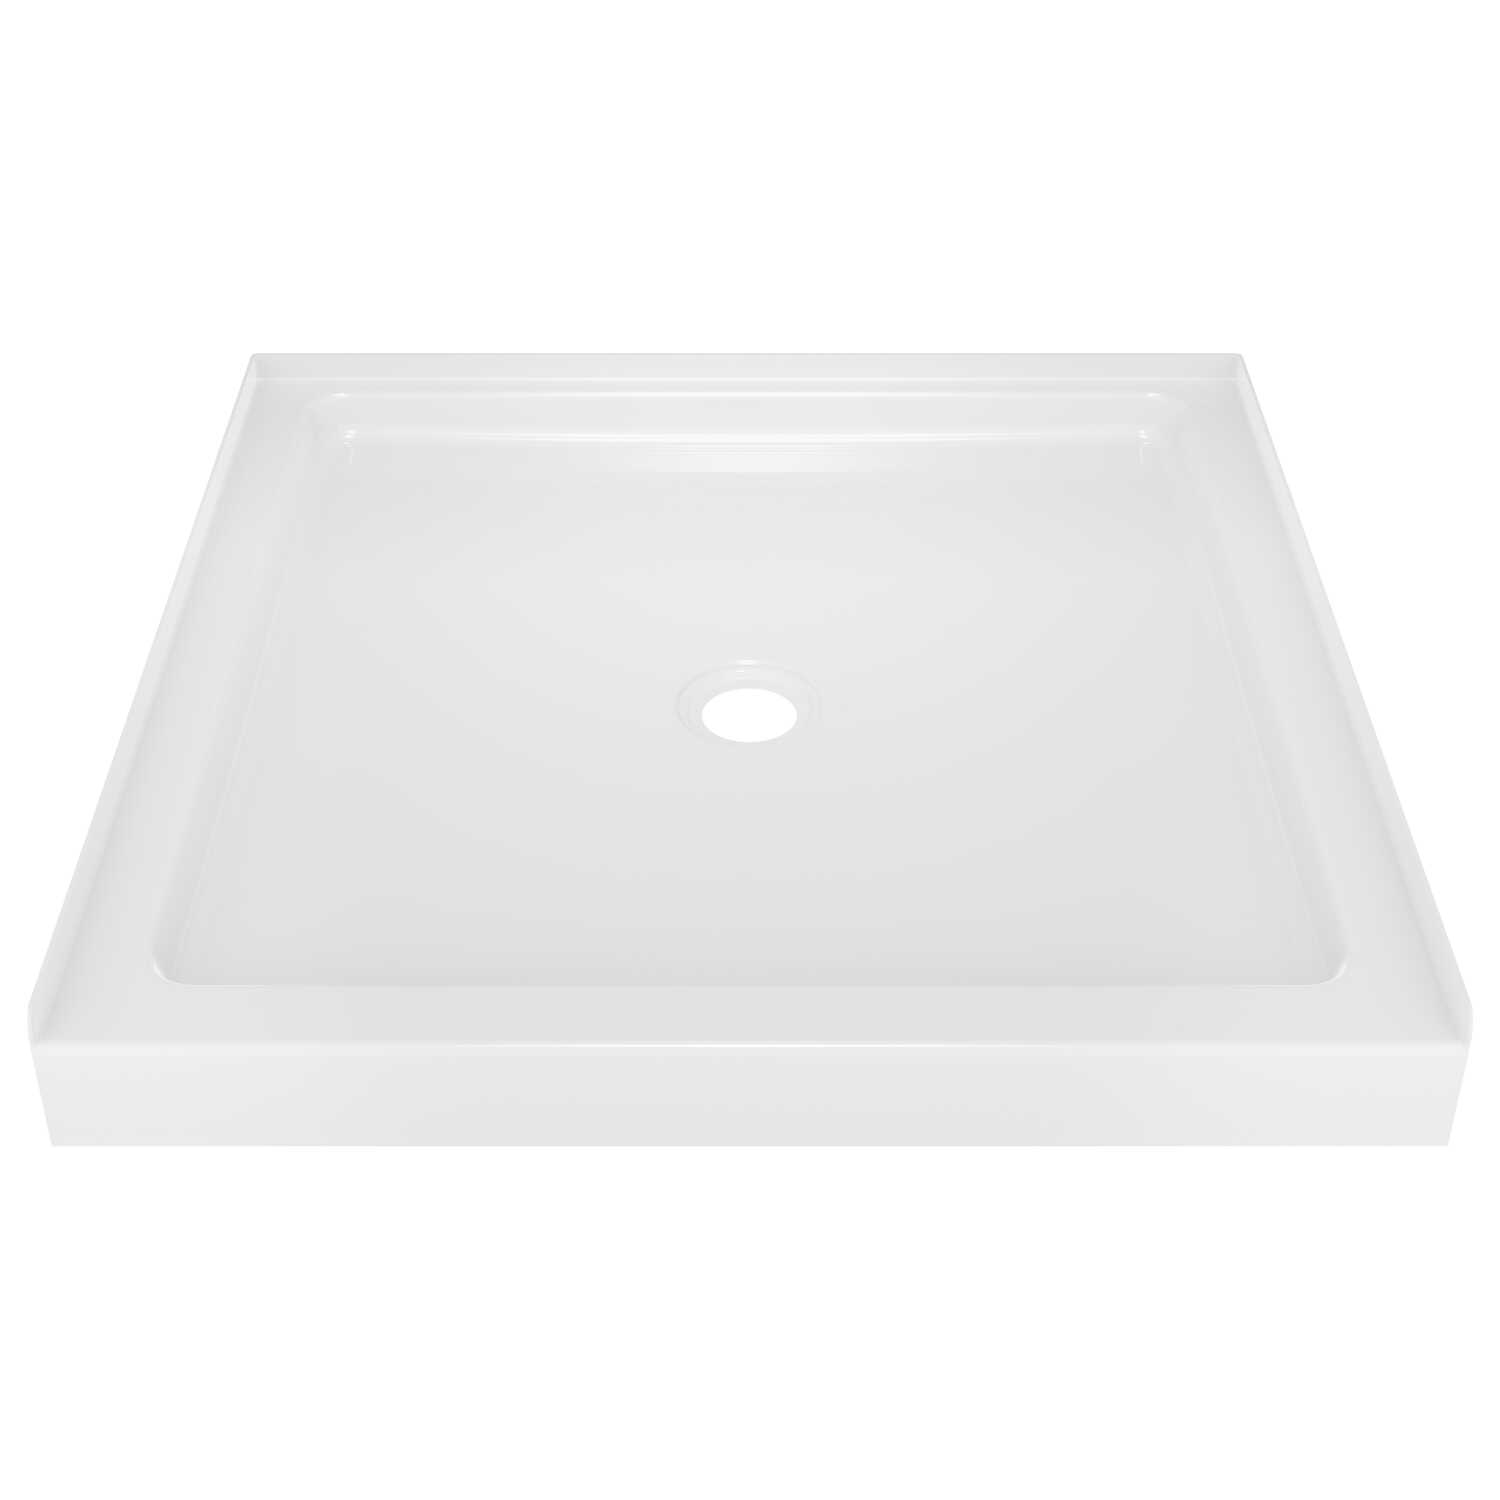 Delta Bathing System  Classic  3.5 in. H x 36 in. W x 36 in. L White  Acrylic  Center Drain  Square